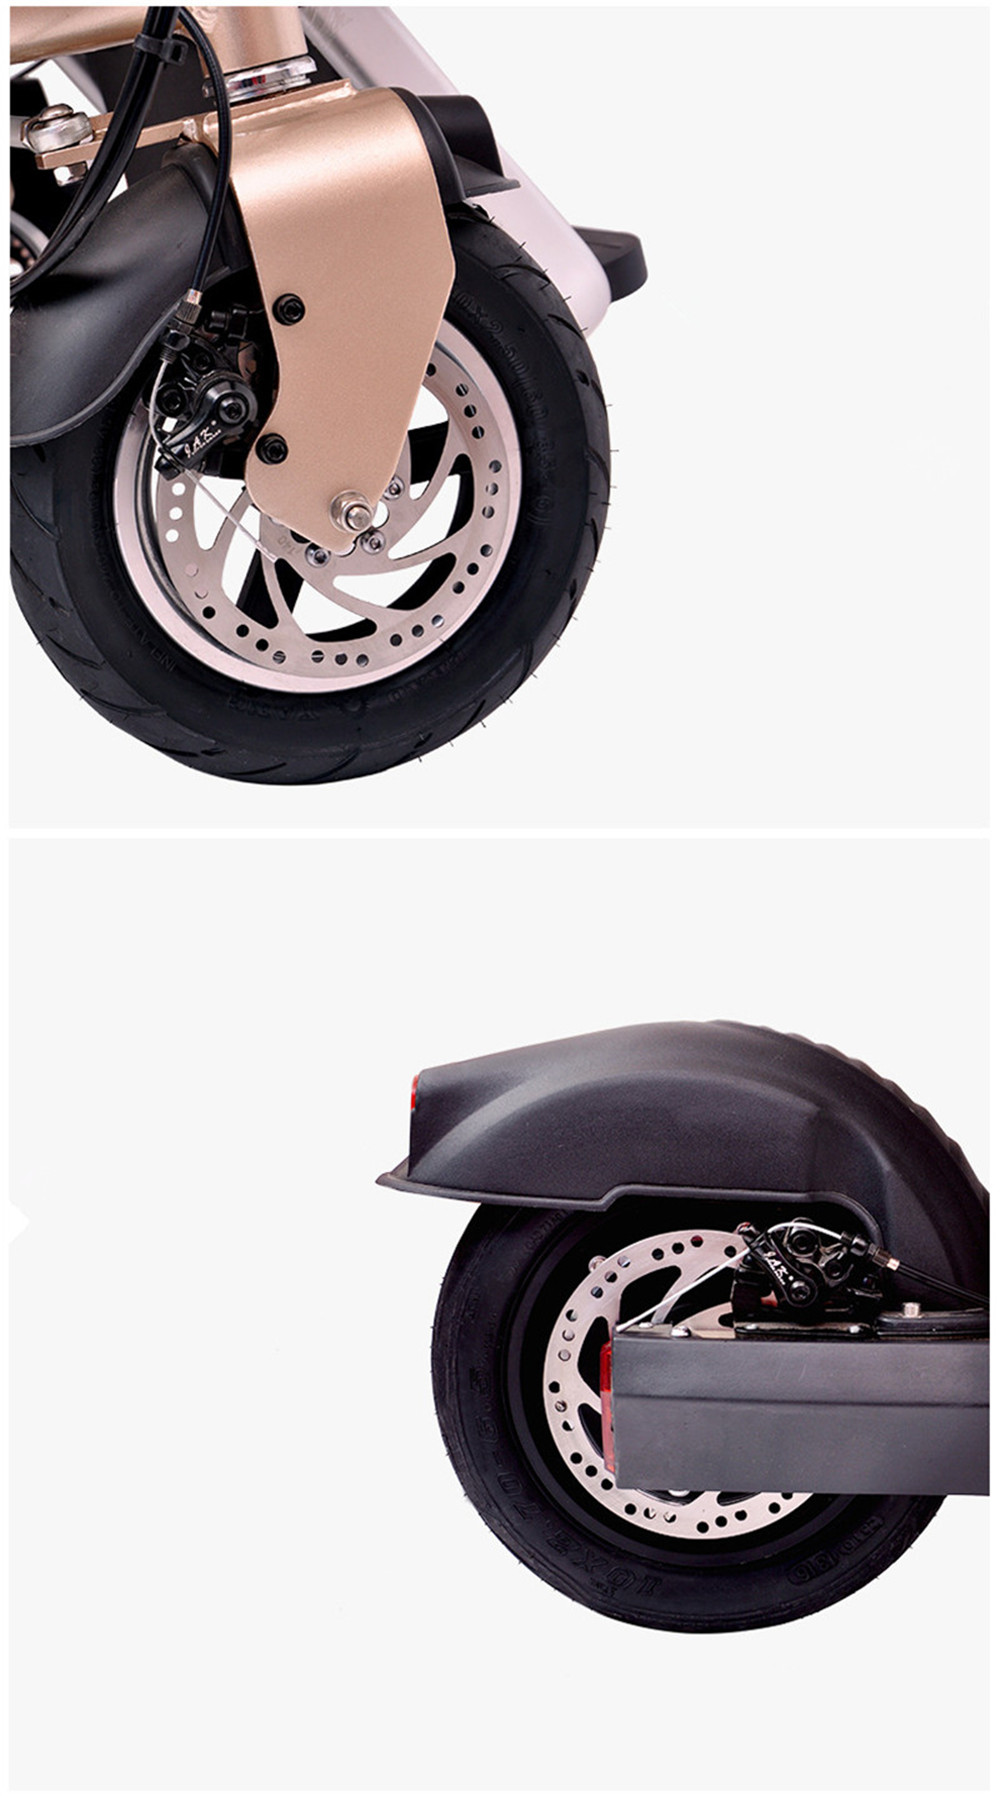 12 Inch Aluminum Alloy Removable Load 160kg Mini 36V 12Ah Electric Family Bicycle Pram Mother and Child Car Stroller11